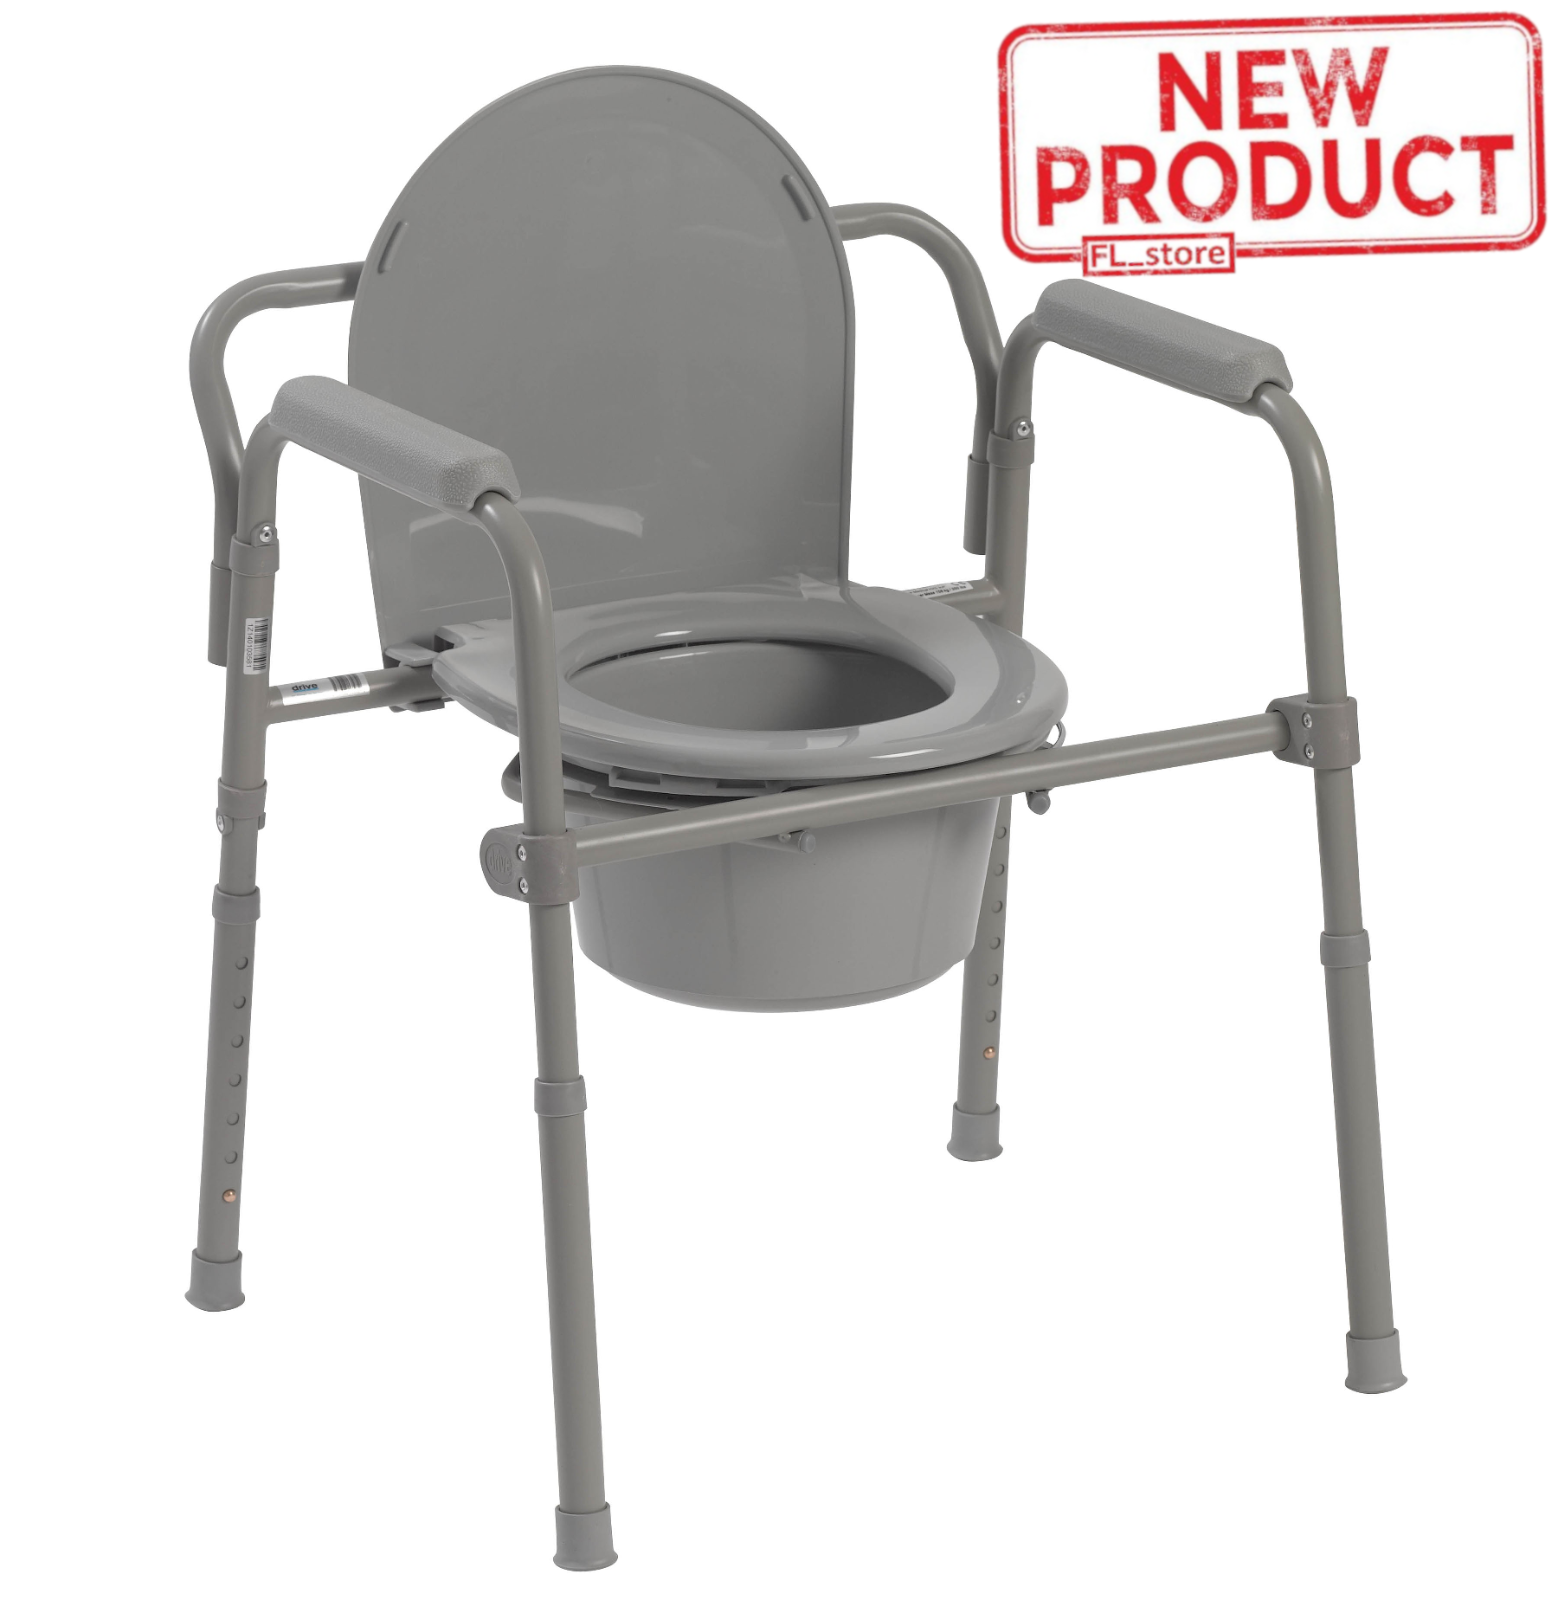 Adult Toilet Seat Potty Chair Folding Commode Chamber Bedsid